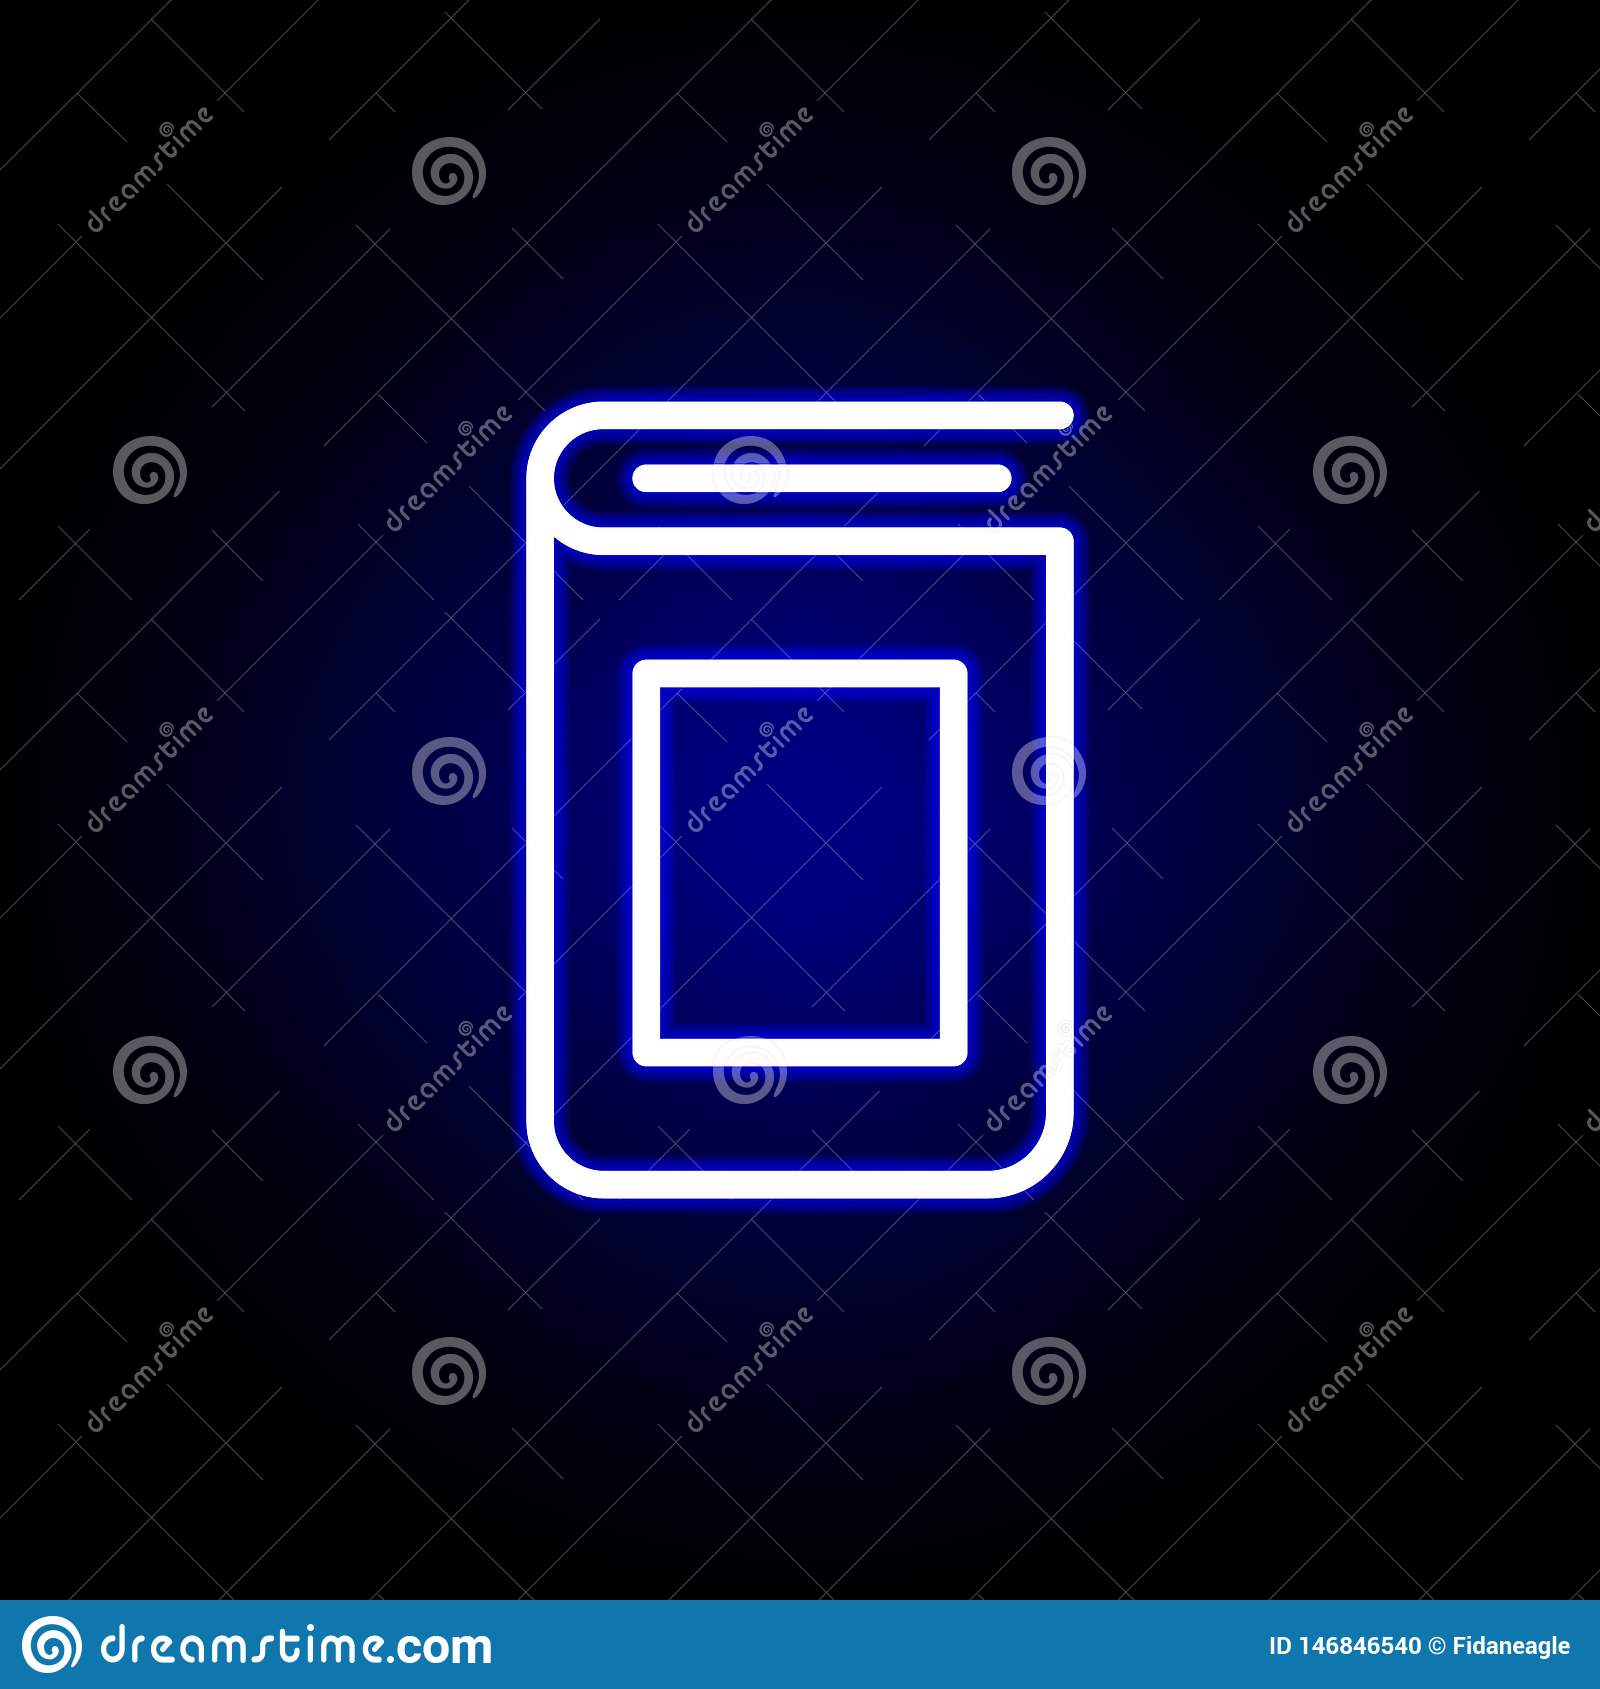 Book cover icon in neon style. Can be used for web, logo, mobile app, UI, UX